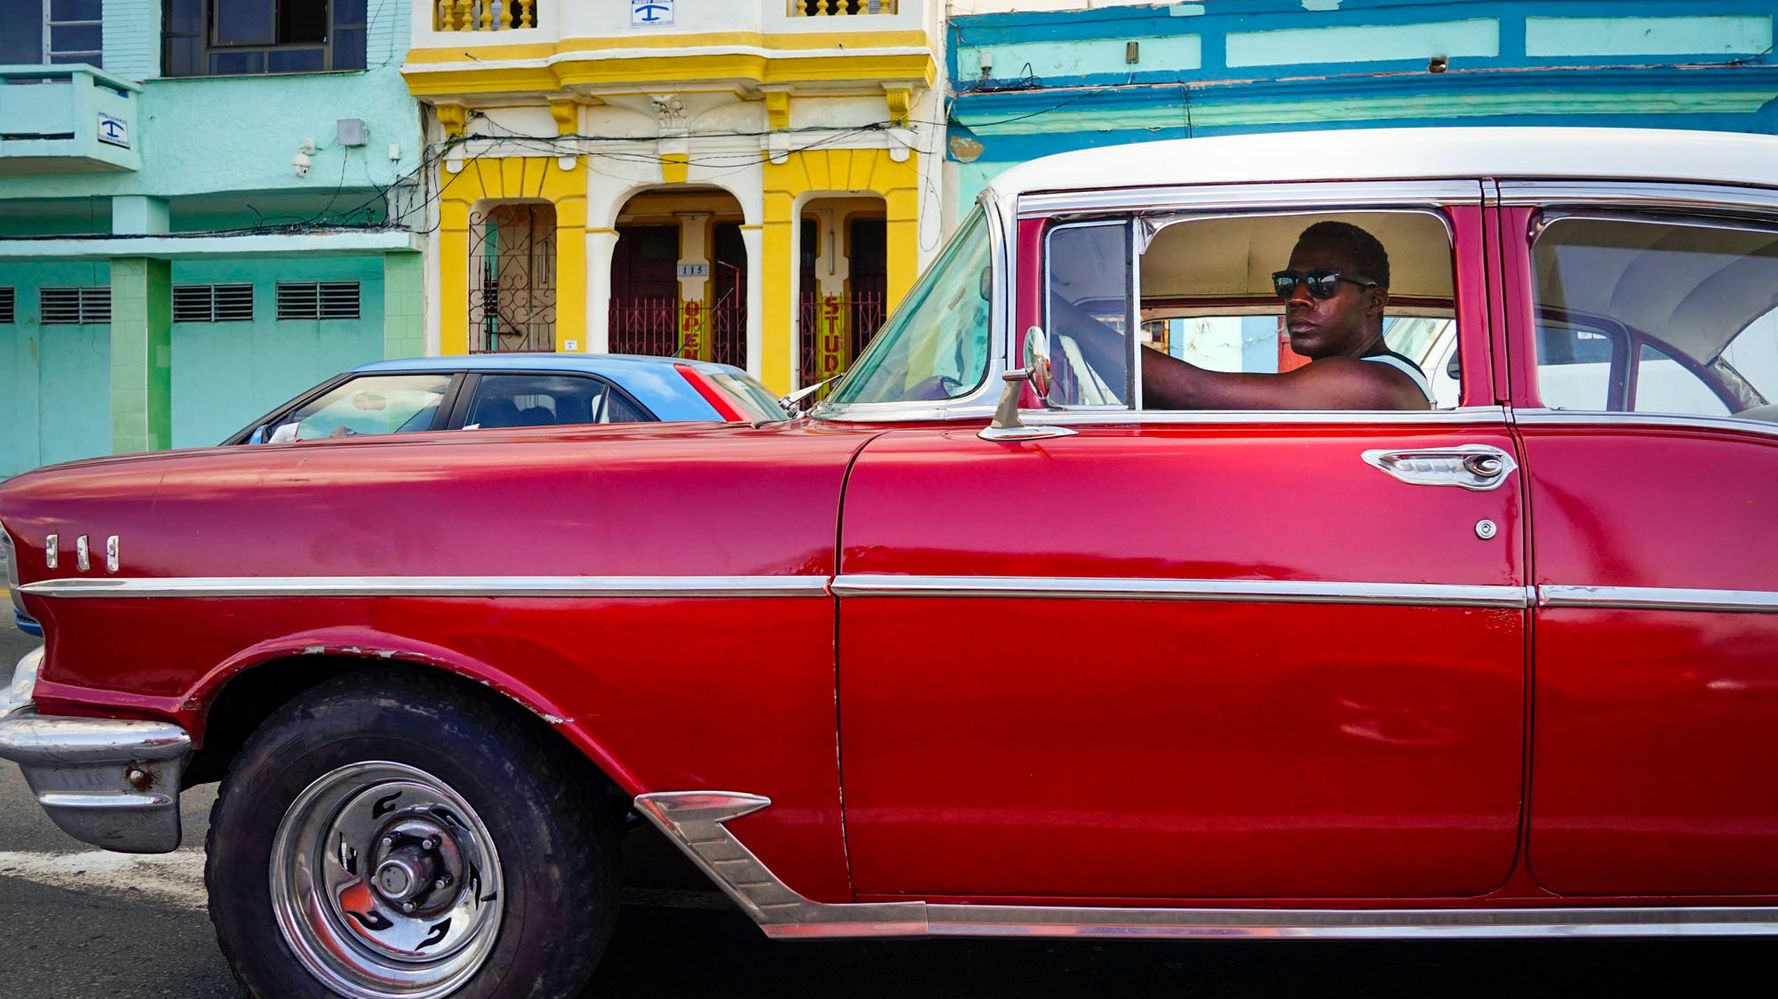 11 Tips on How to Take Street Photos Like a Pro on Your Next Trip Abroad: A Journey through Cuba